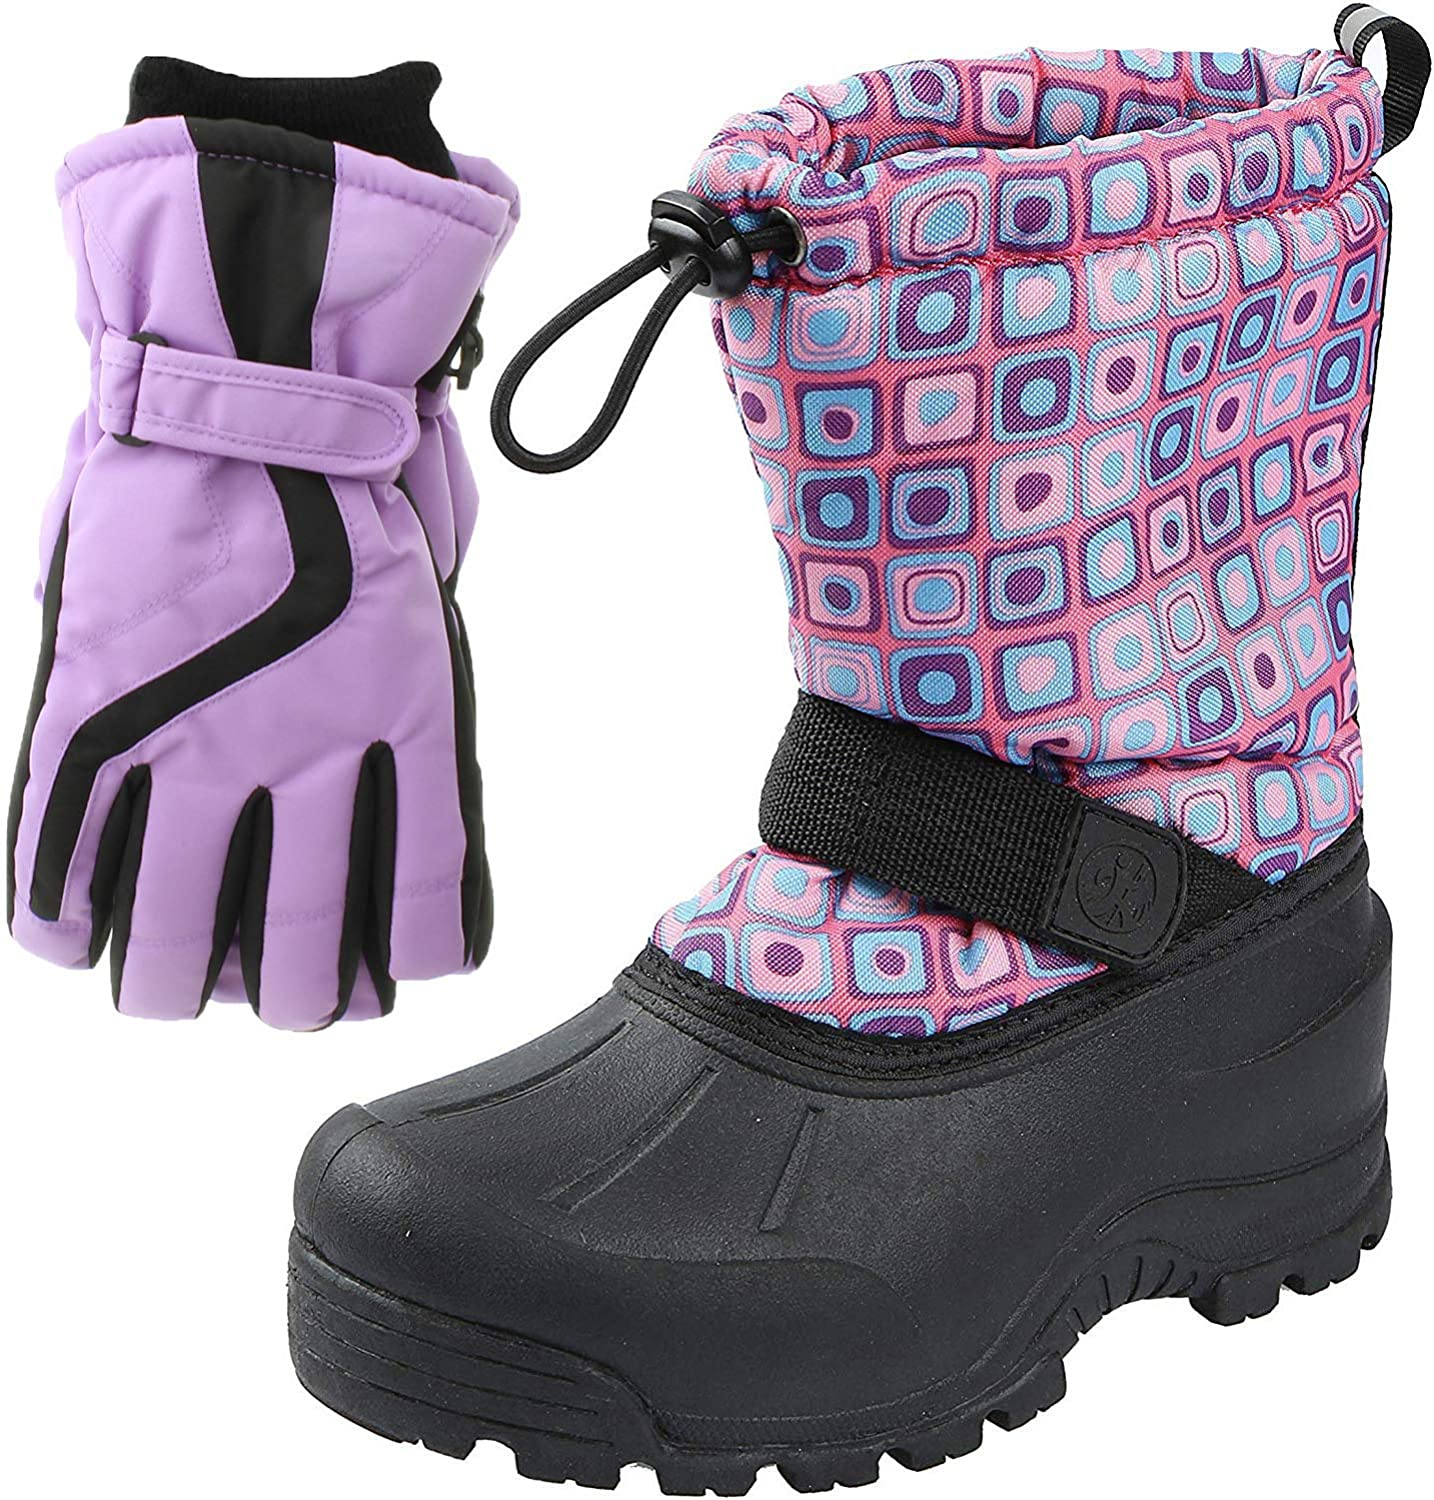 Northside Frosty Winter Manufacturer OFFicial shop Snow Boots with for Water Matching Regular discount Girls